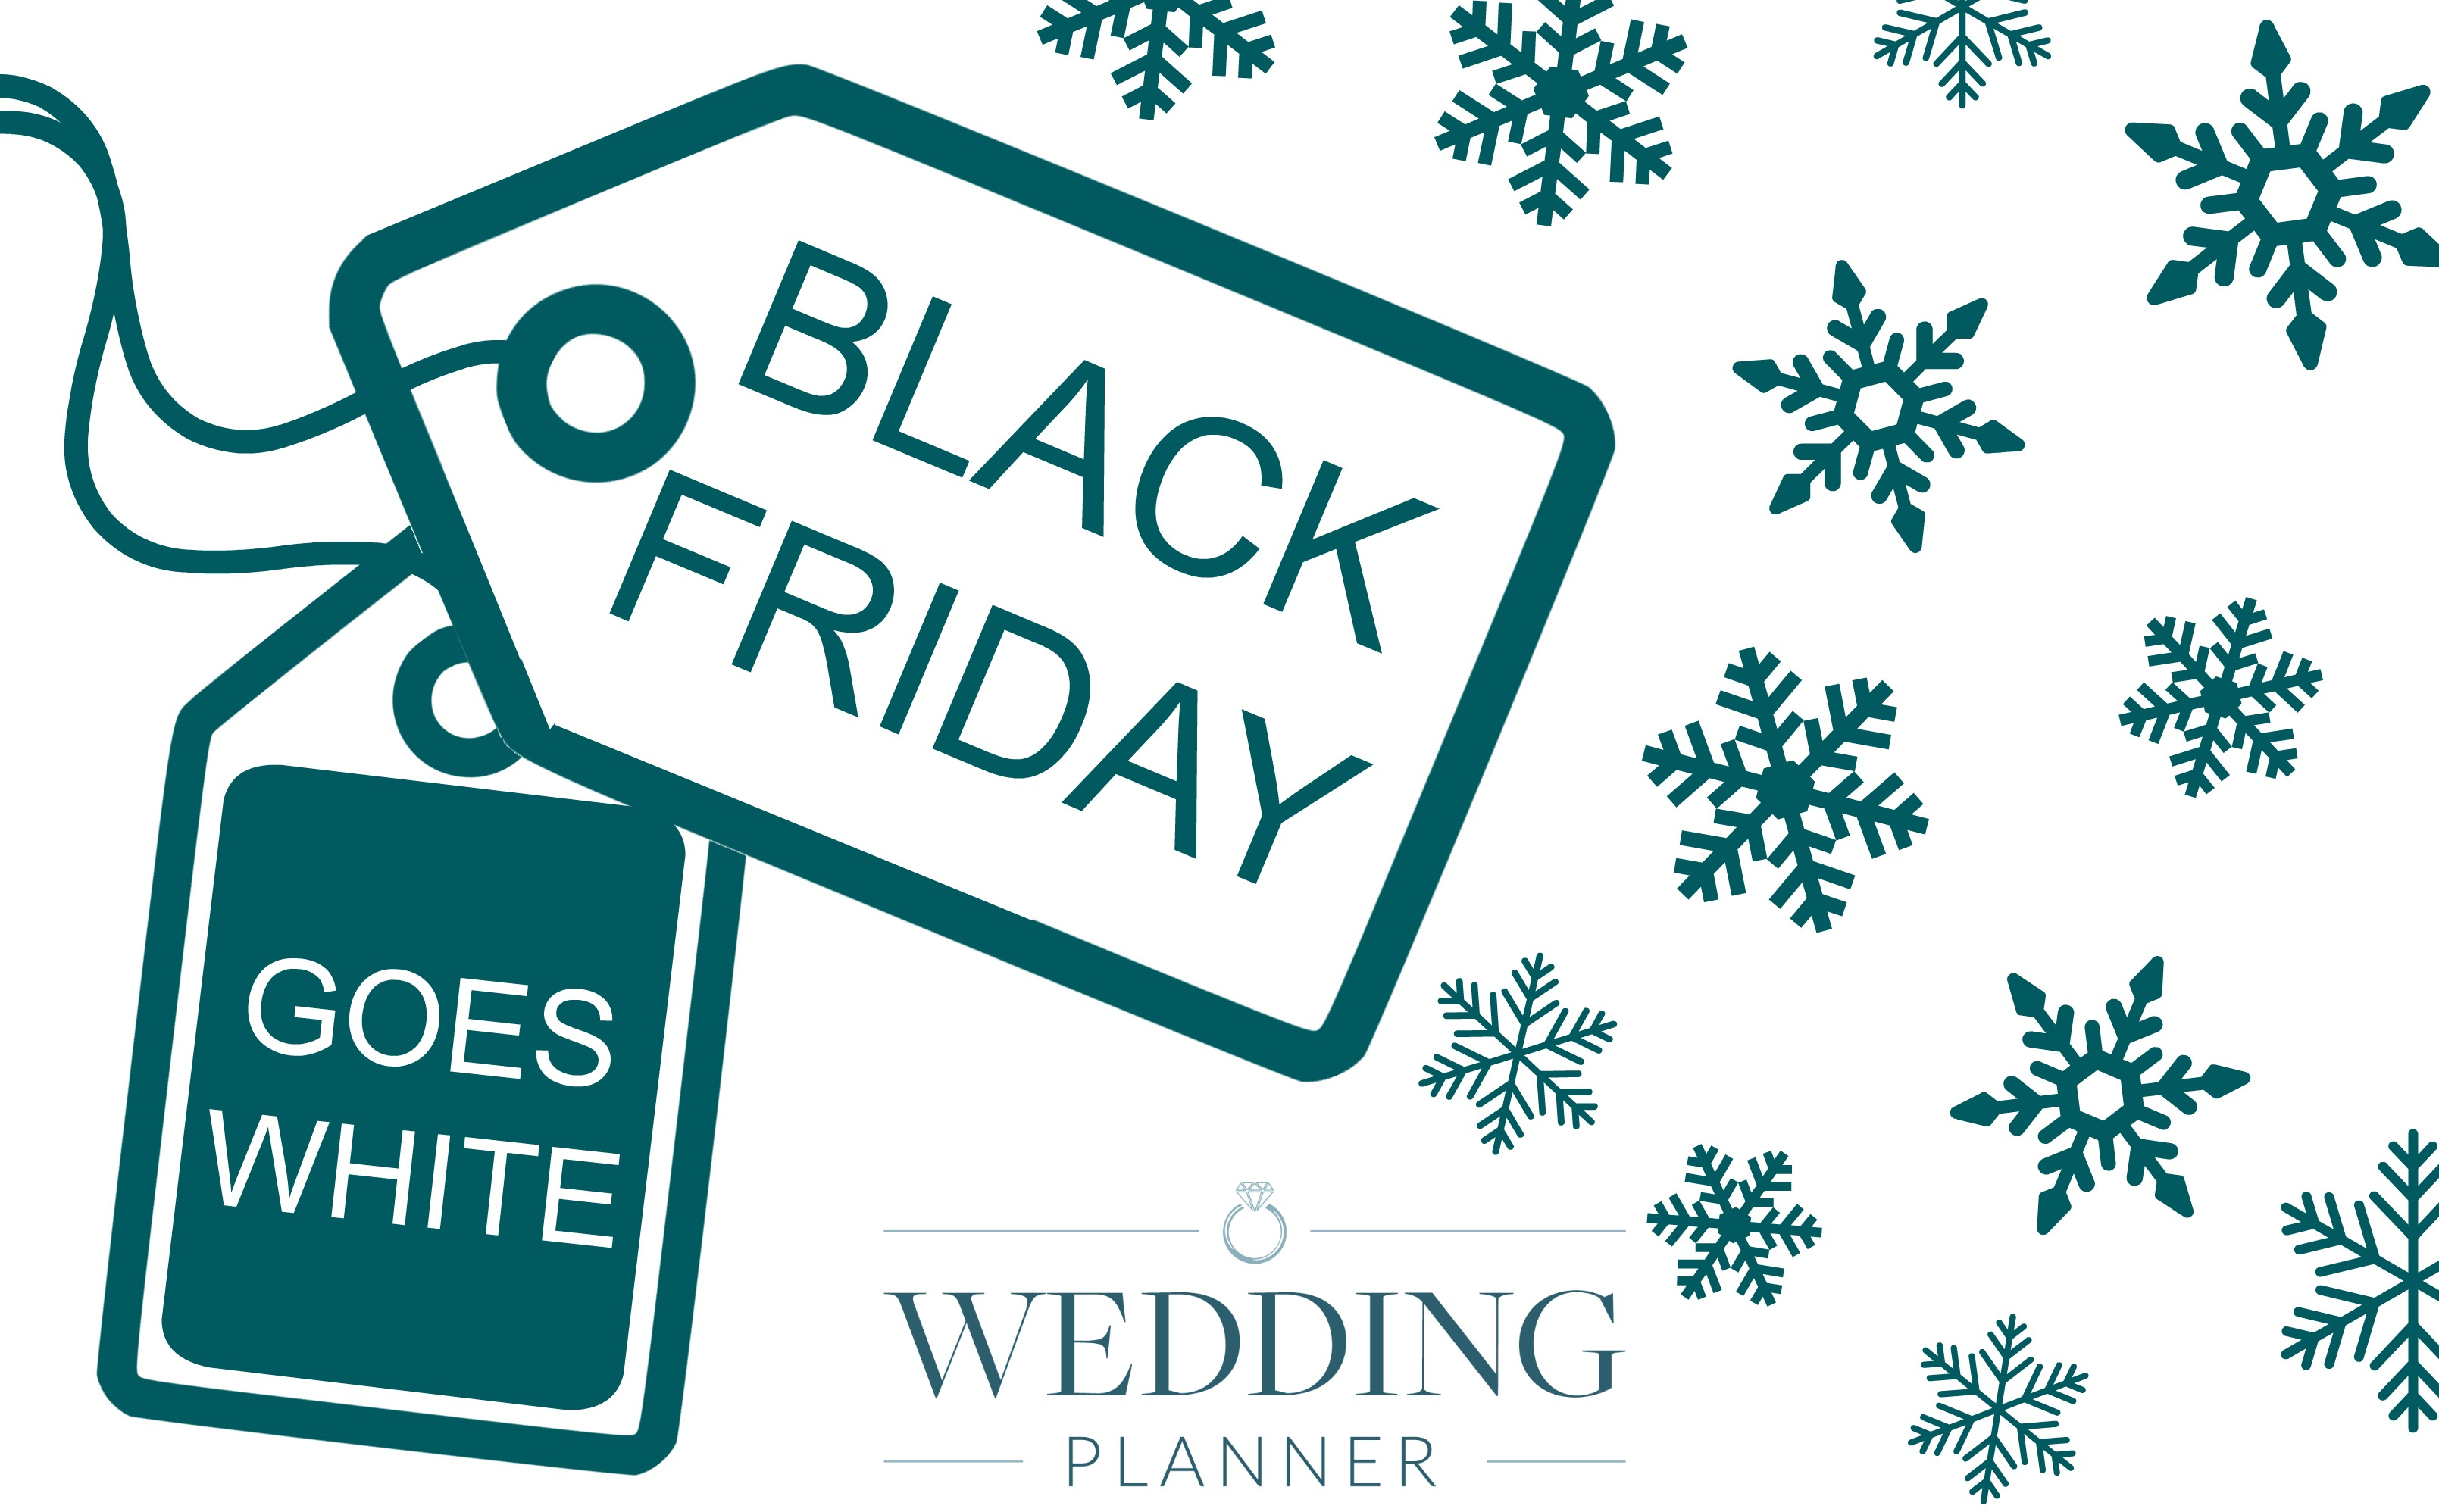 wedding discount offers, black friday wedding offers